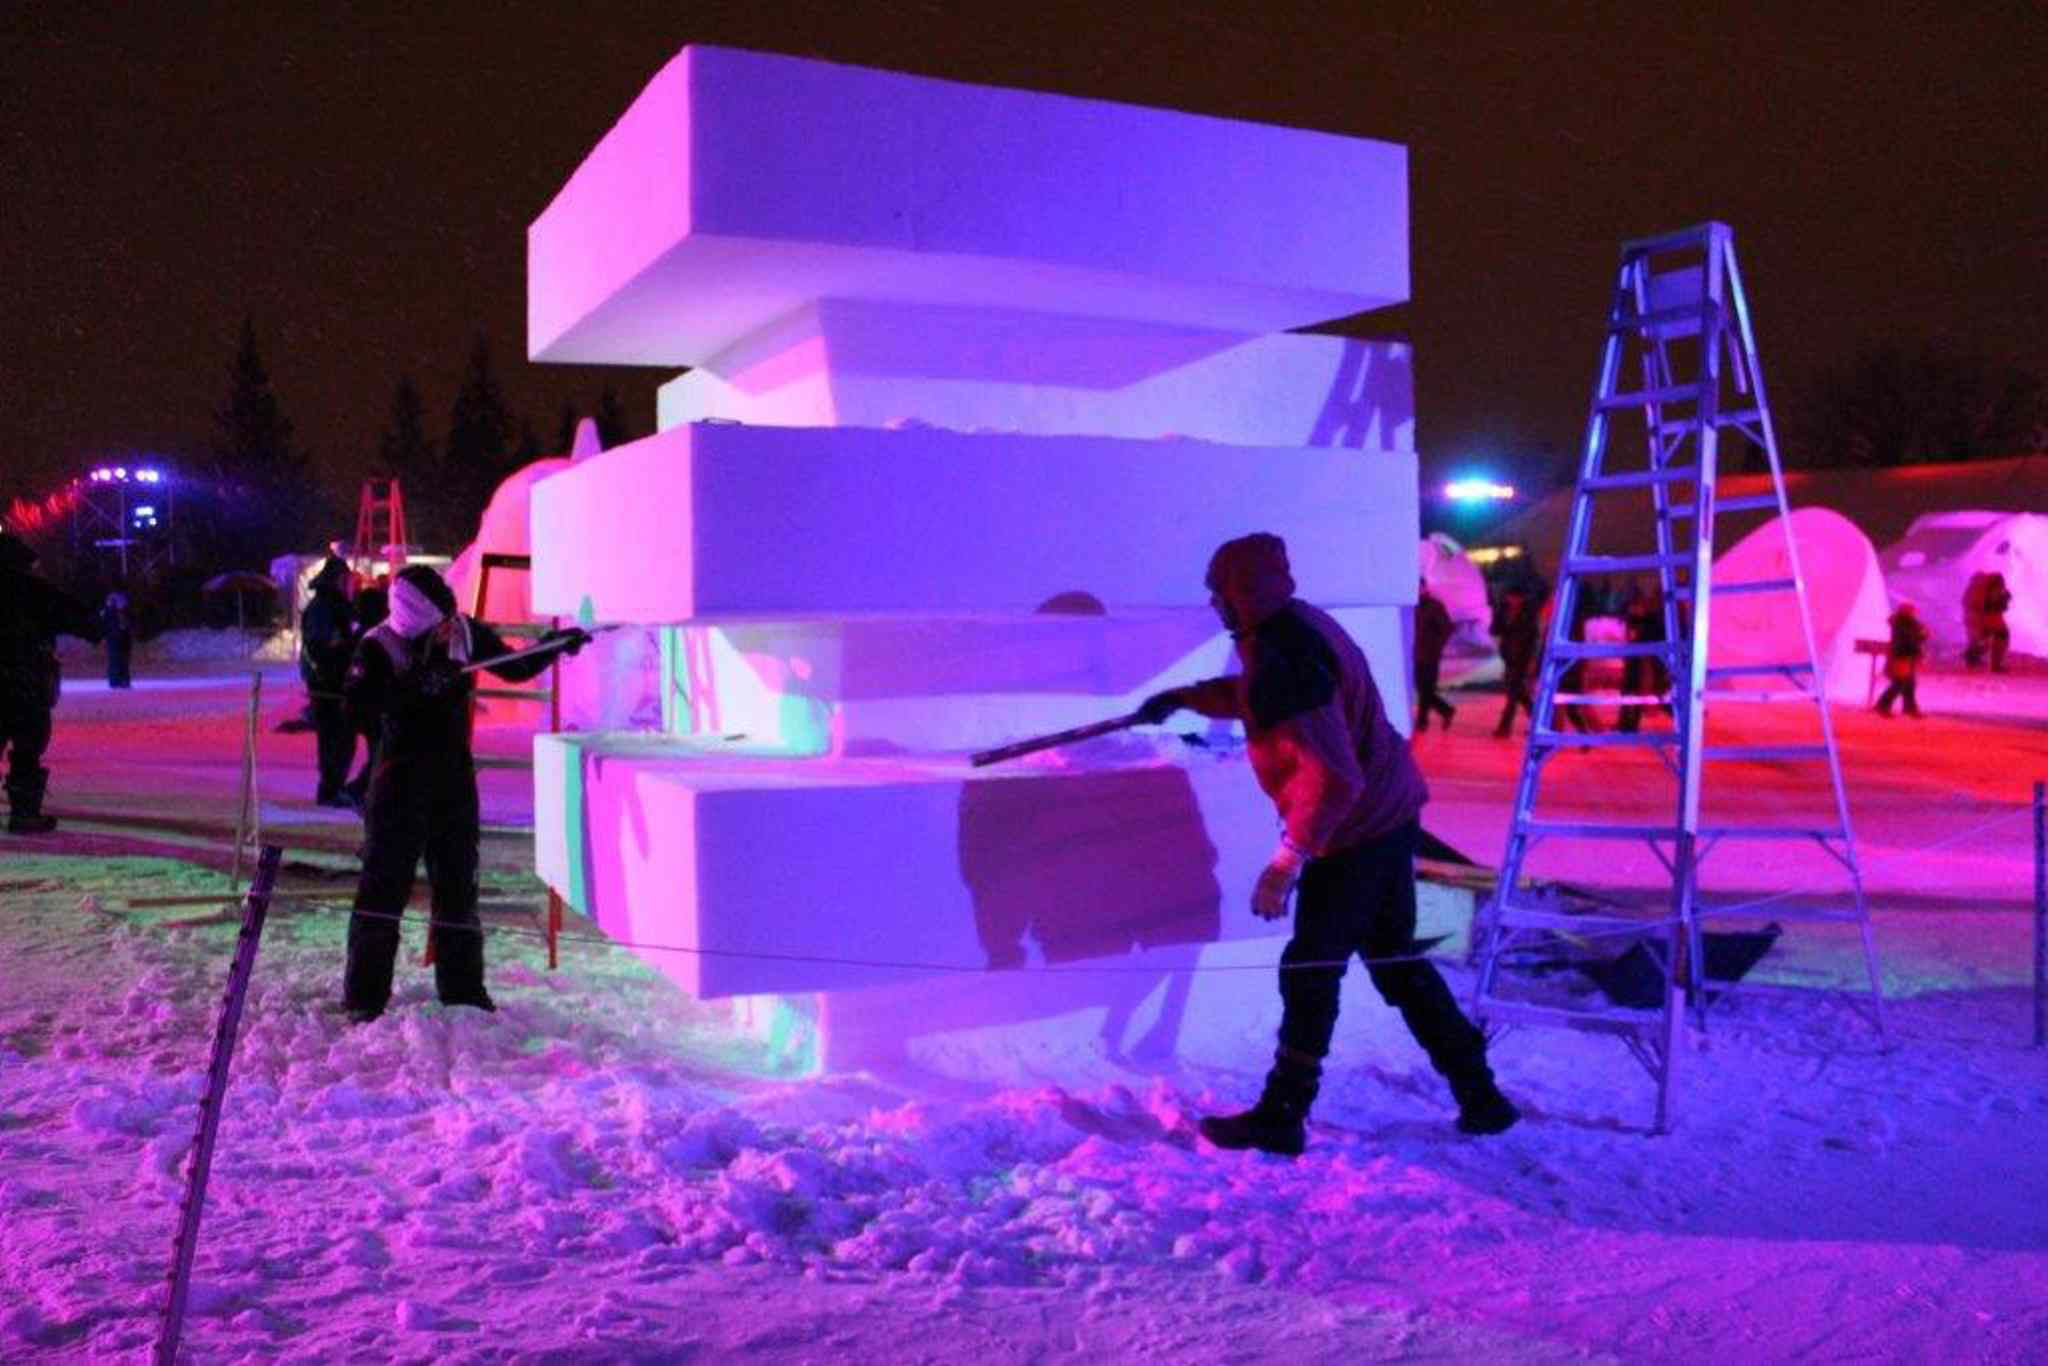 Snow sculpters at work.